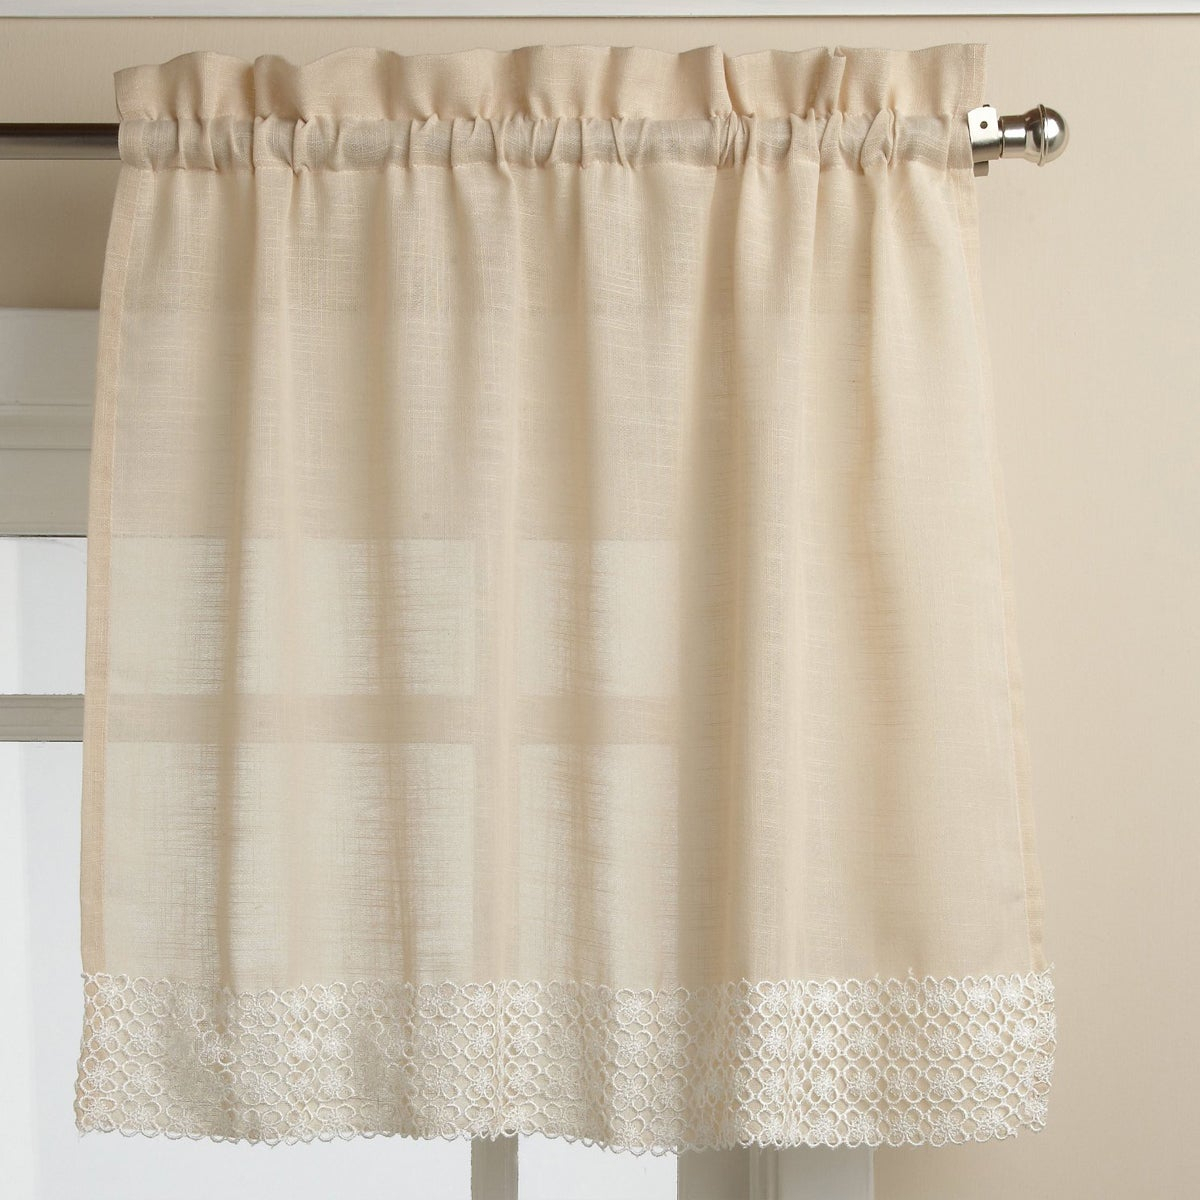 French Vanilla Country Style Curtain Parts With White Daisy Lace Accent Tier, Swag And Valance Options Pertaining To French Vanilla Country Style Curtain Parts With White Daisy Lace Accent (View 2 of 20)